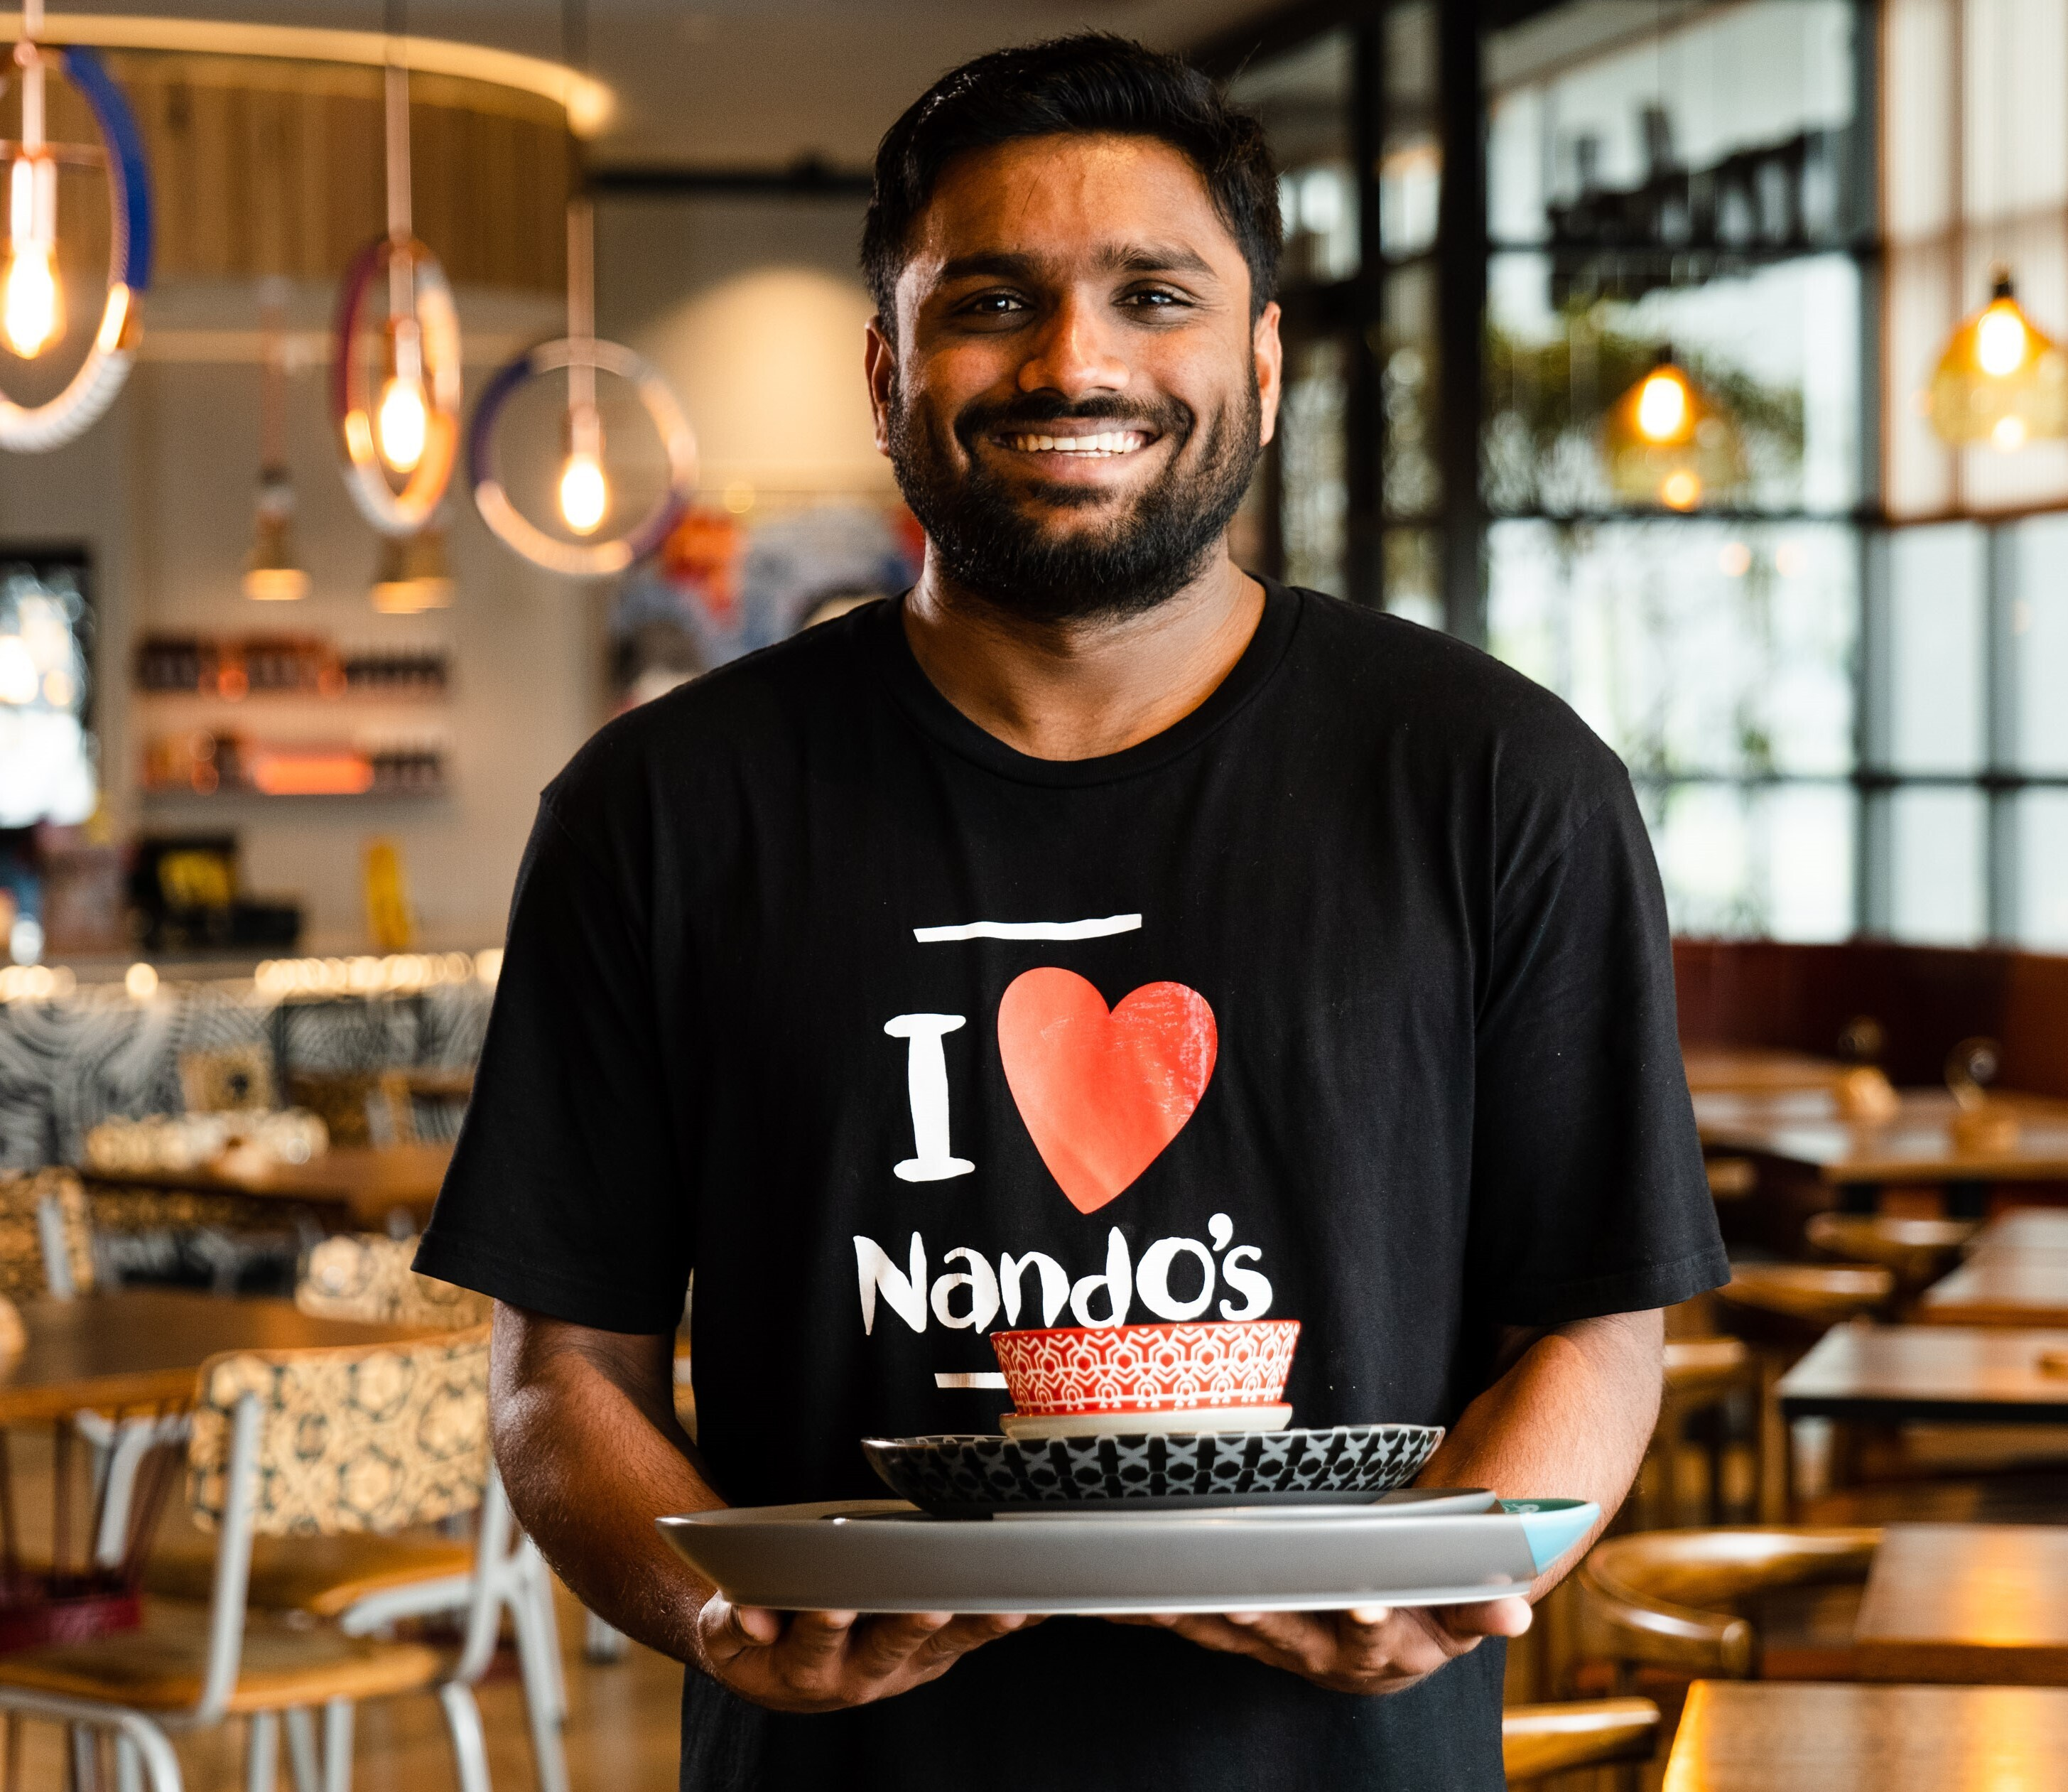 Picture of Nando's staff member smiling